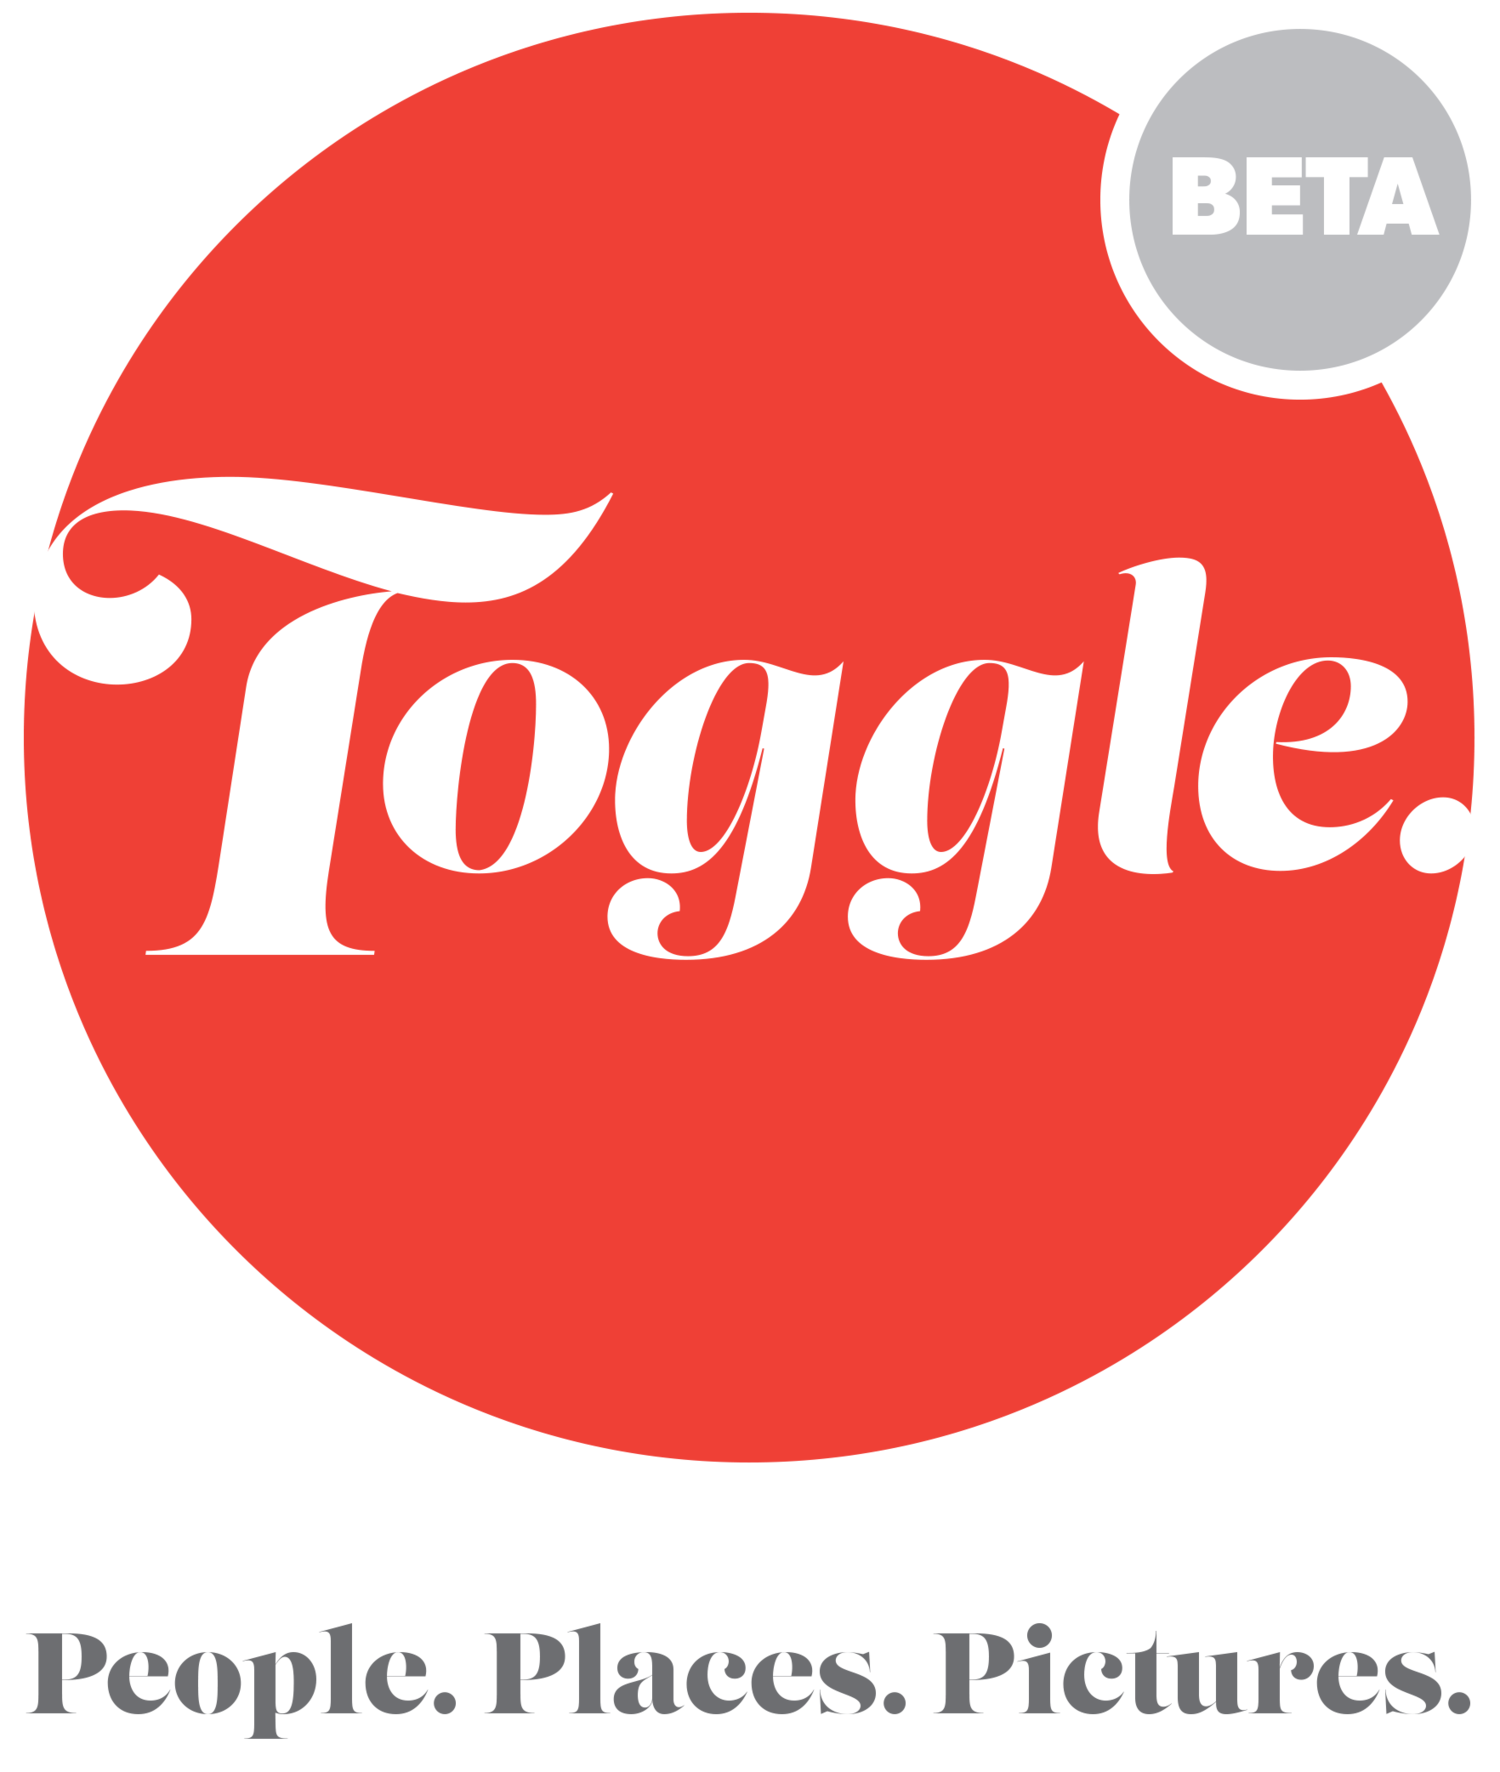 Have you fallen under the Instagram #shadowban? — Toggle